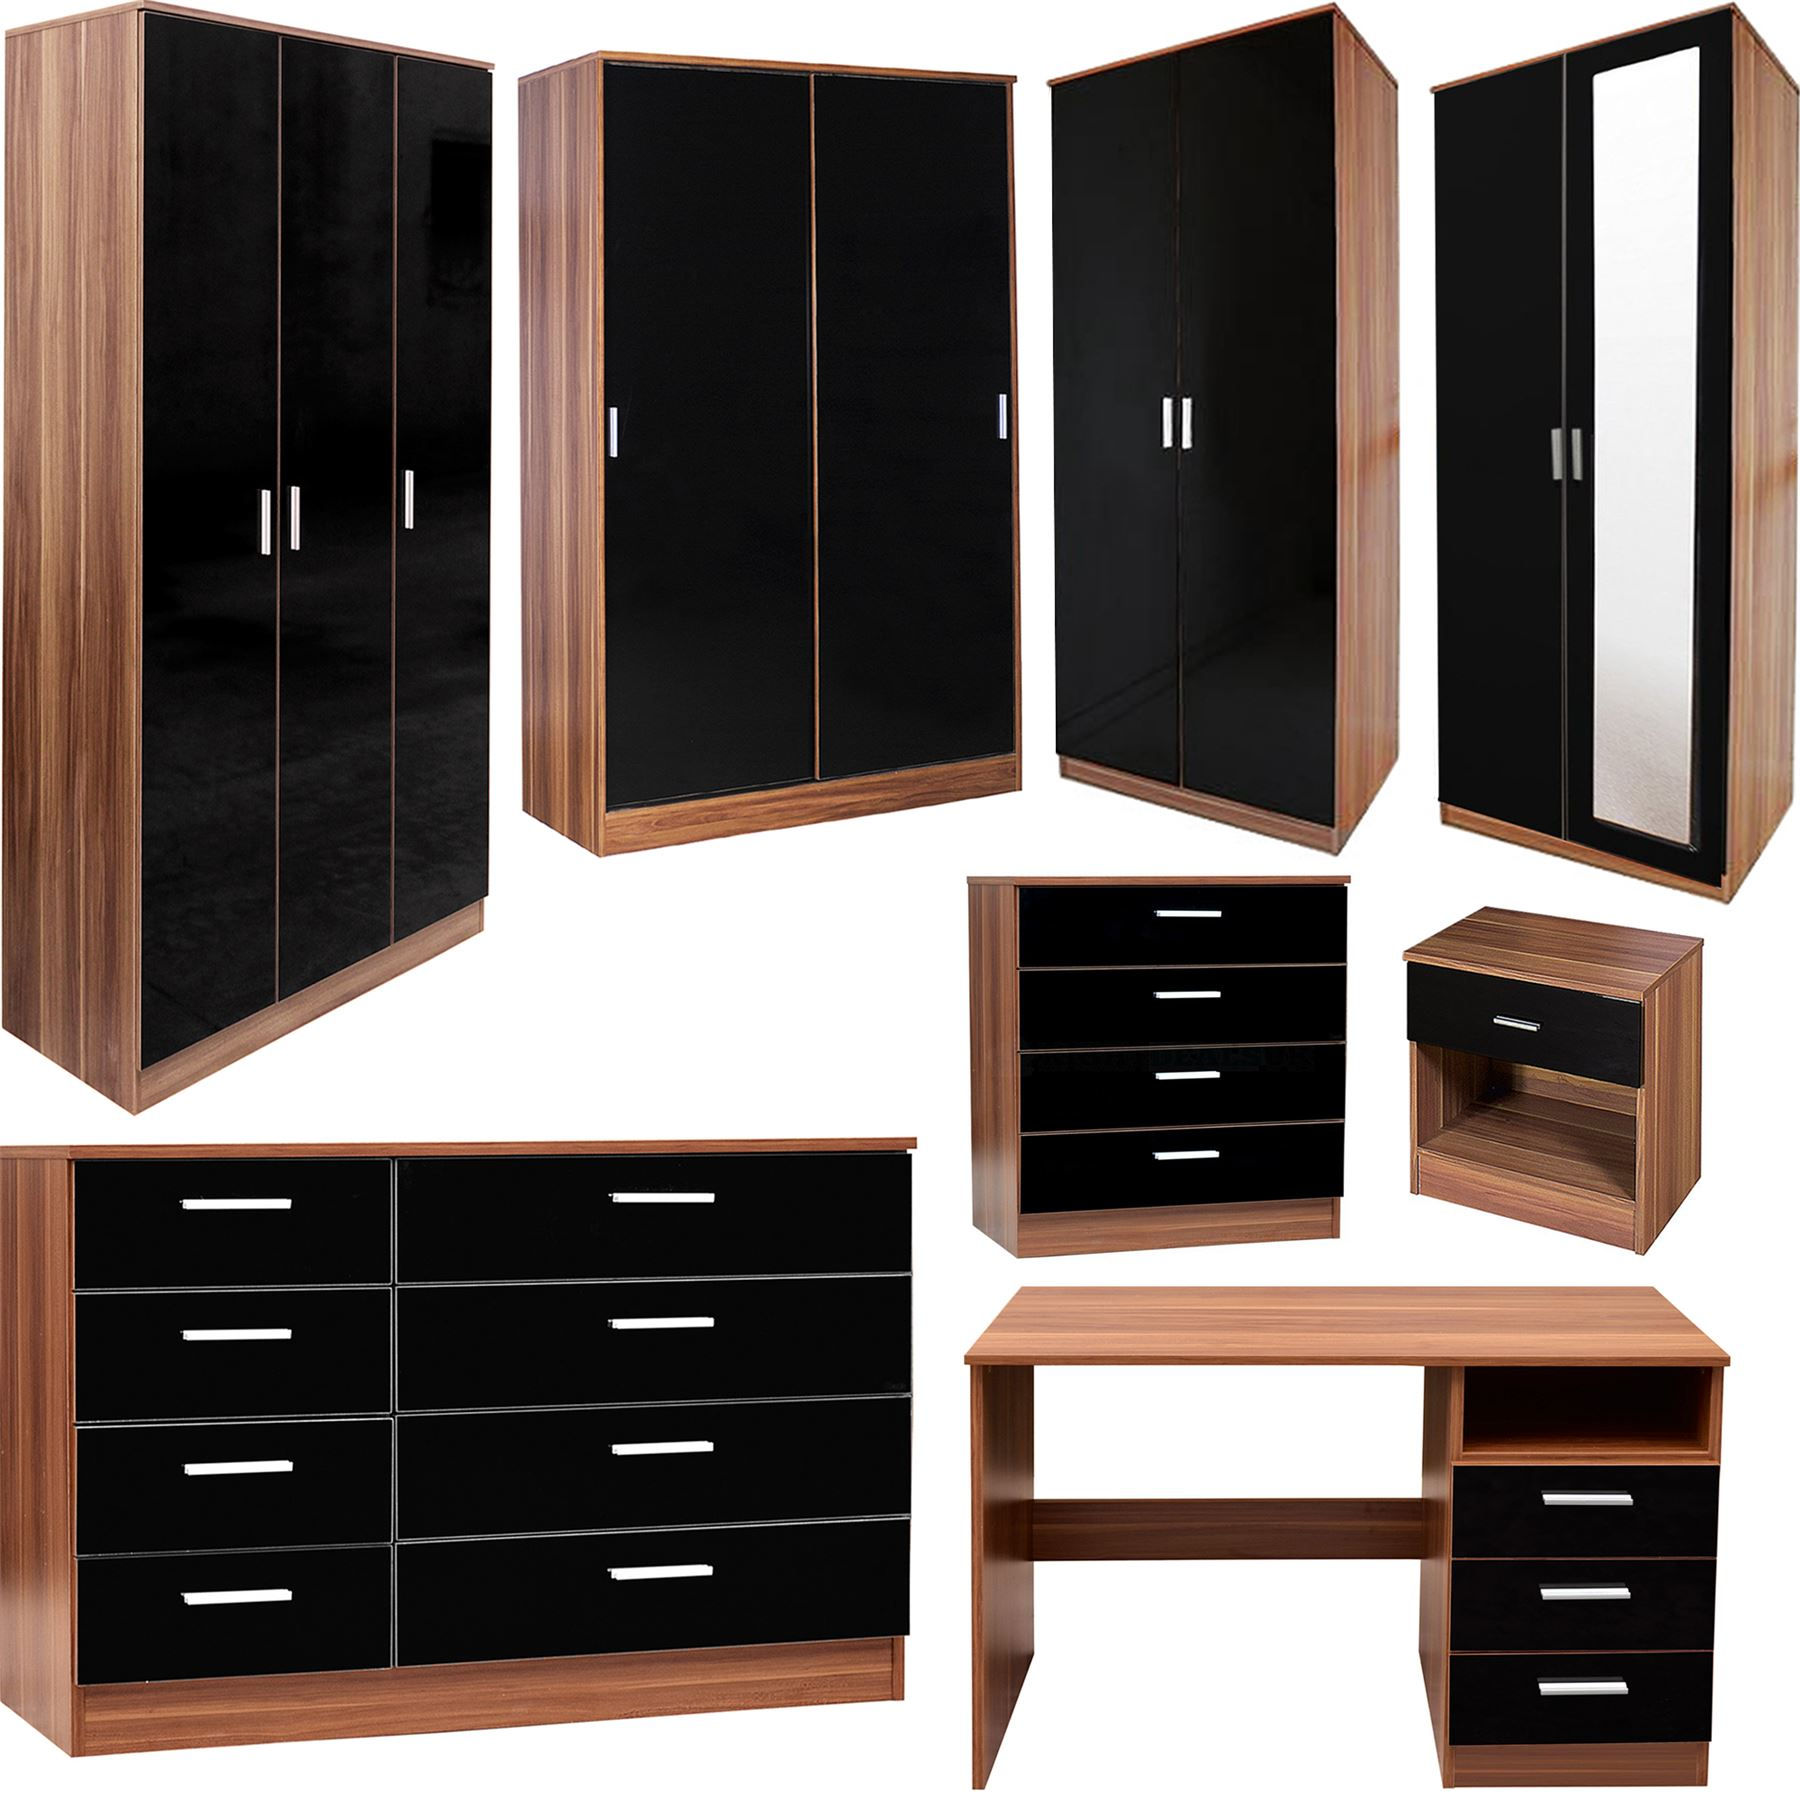 Bedroom Furniture 3 Piece Set Black Gloss Walnut Wardrobe Bedside